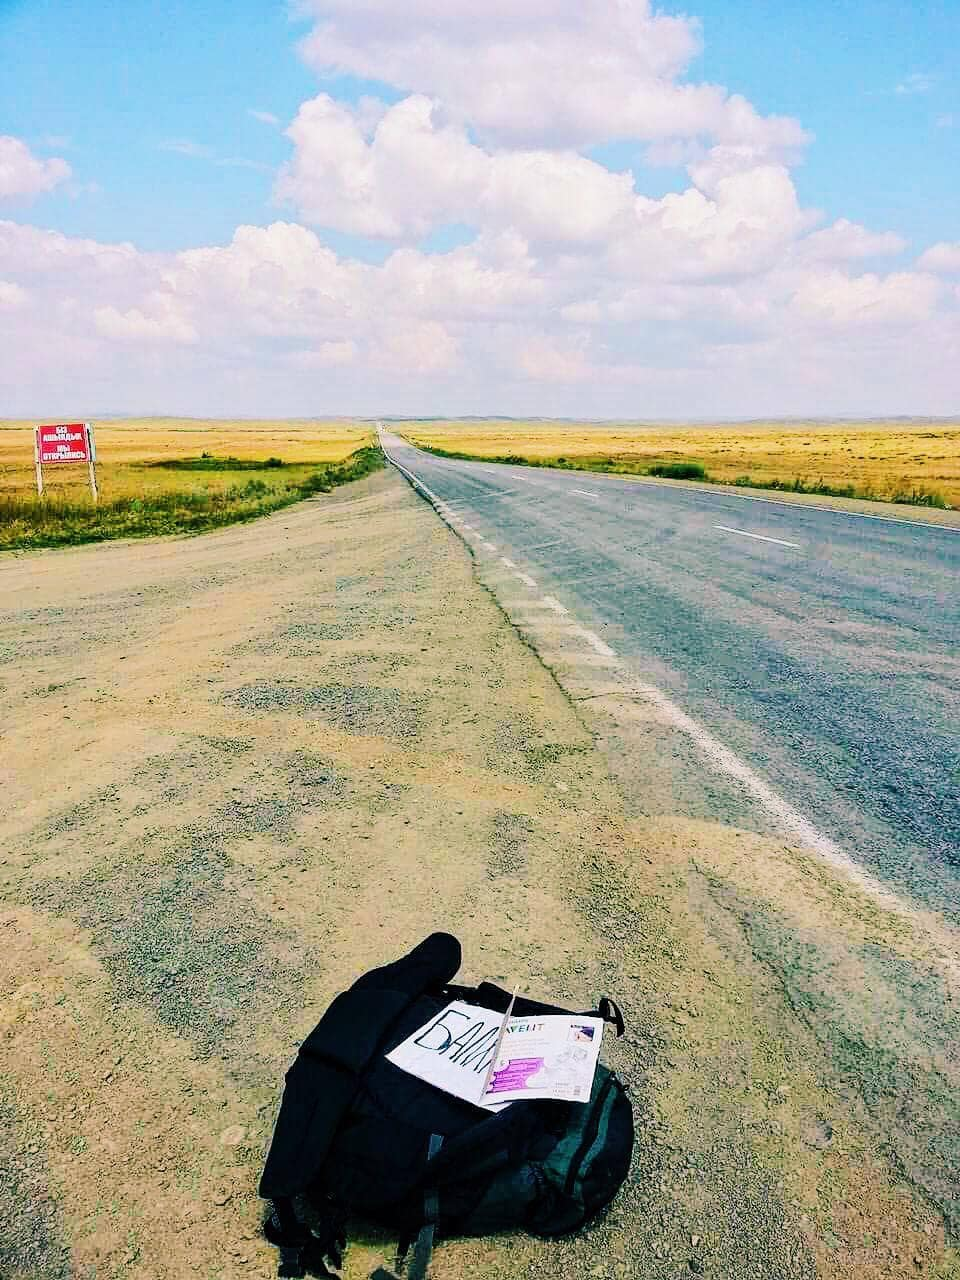 Hitchhiking in the middle of nowhere.